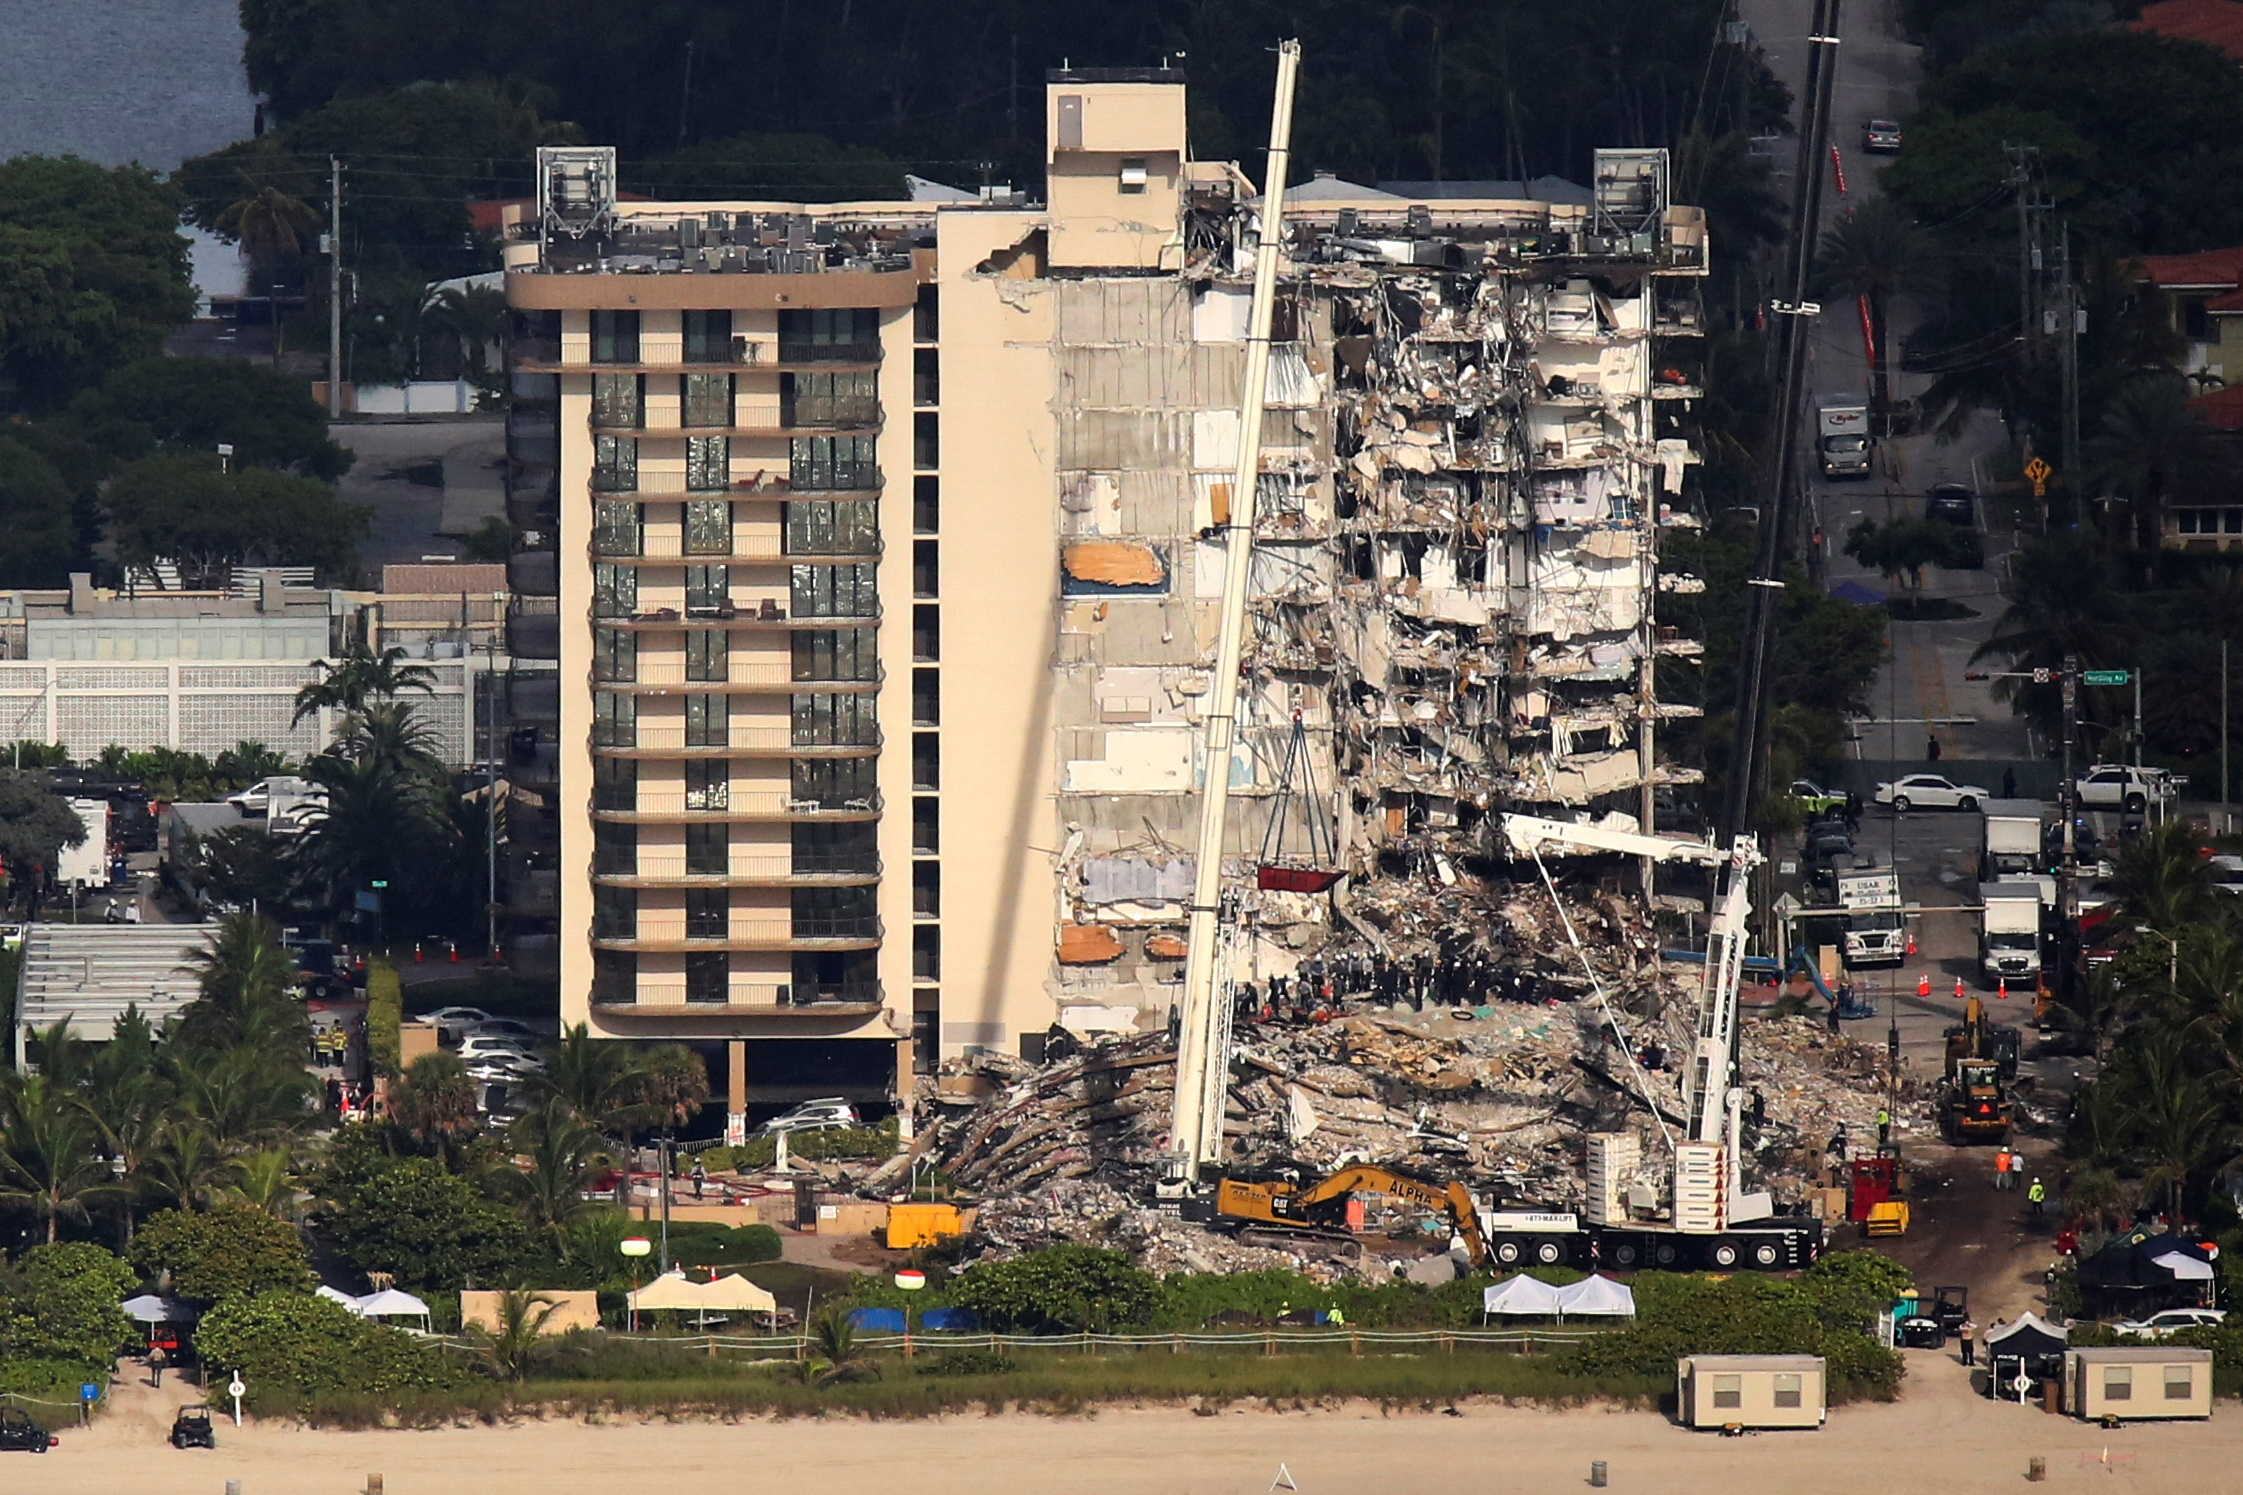 Aerial view of the building that collapsed in Miami.